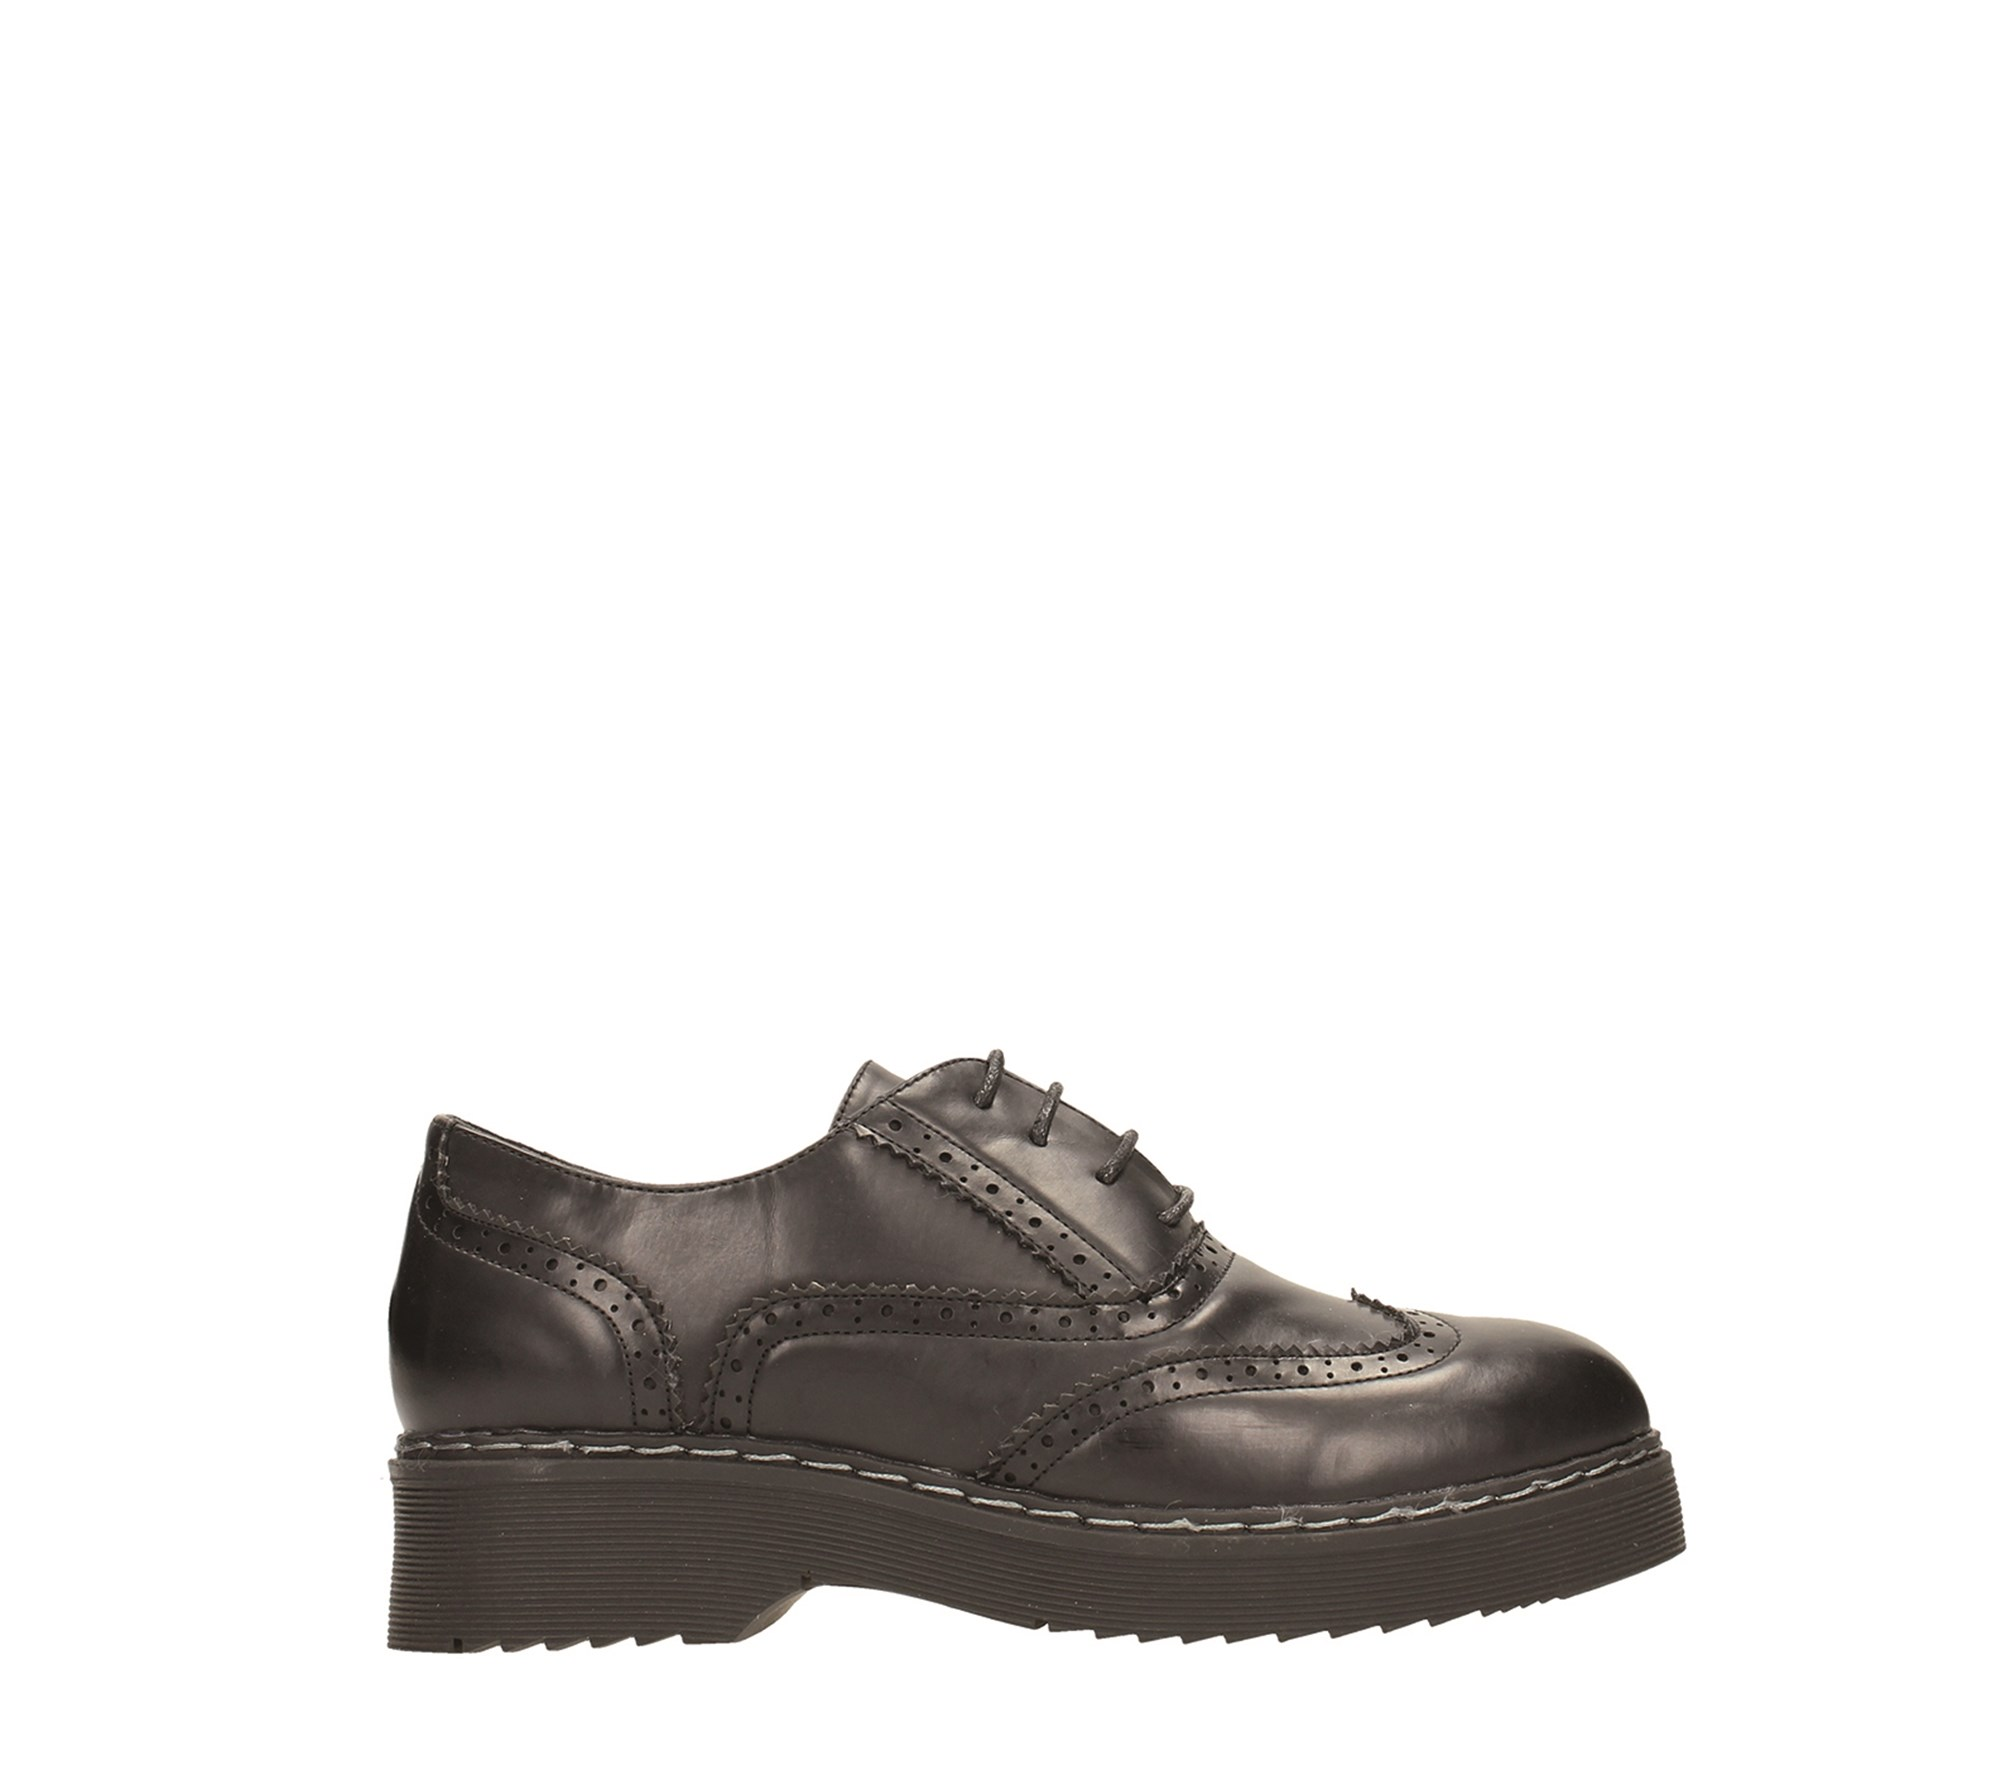 Tata Italia Shoes Woman Derby 7172